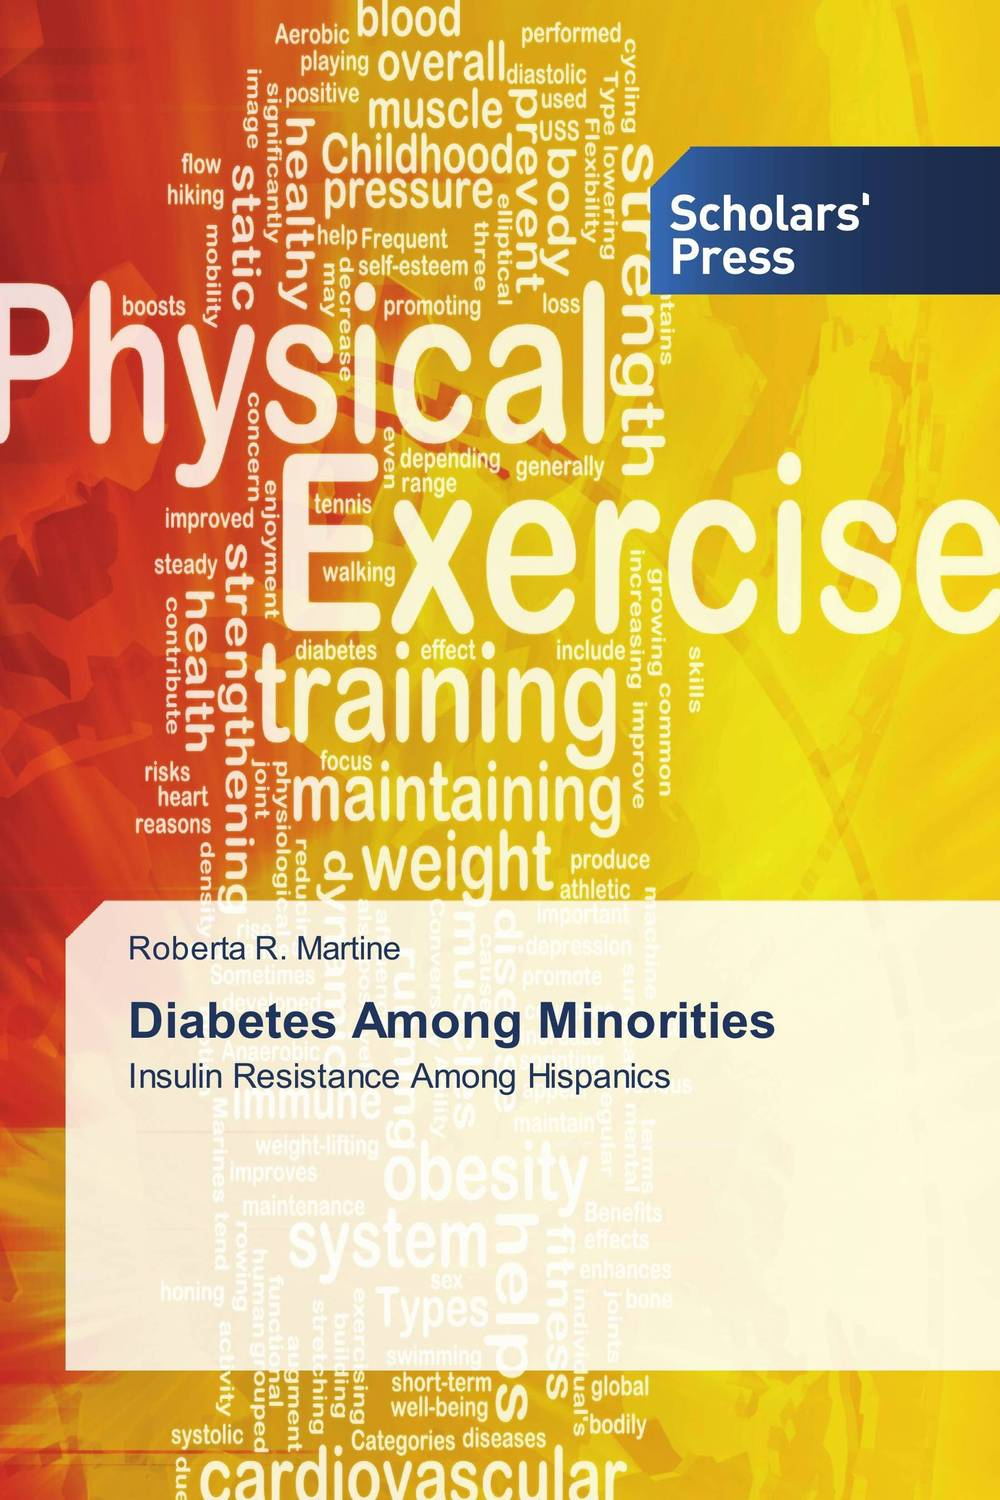 Diabetes Among Minorities relationship between physical activity level and exercise capacity